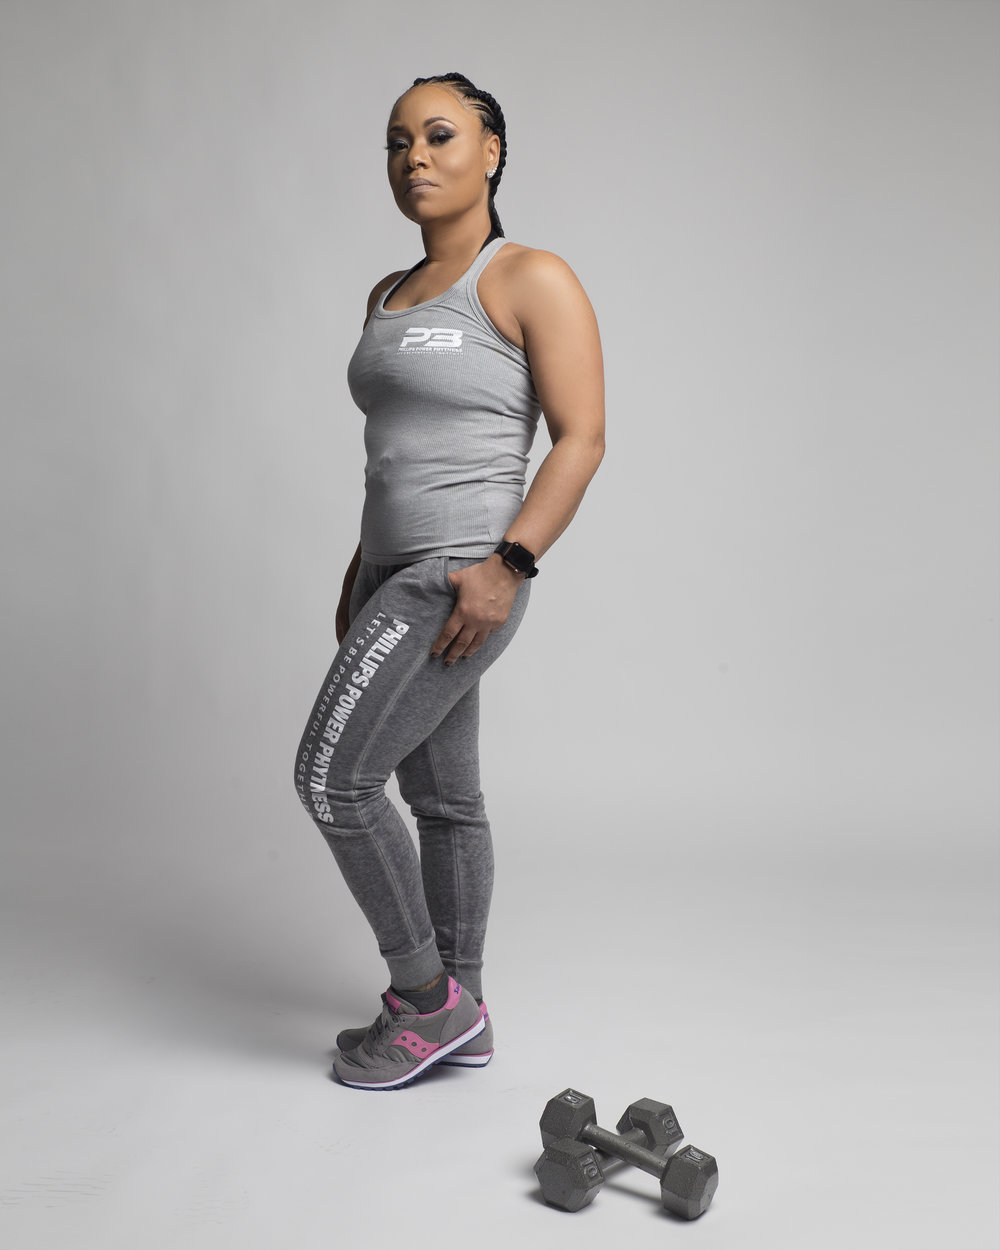 Sharnia Phillips phillipspowerphytness@gmail.com @phillips_power_phytness http://www.phillipspowerphyness.org Country United States State / Region IL Fashion Label  ABOUT  I am a National Federation of Professional Trainers (NFPT) certified trainer who developed a passion for the fitness industry while on her fitness journey seven years ago. She is a veteran of the U.S. Army as well as someone who has devoted much of her life to helping others by working within several different social services domains. Being a personal trainer has allowed her to combine her love of helping people with the love of fitness. Sharnia also holds a bachelor's degree in psychology from Chicago State University and a master's degree in industrial/organizational psychology from Roosevelt University.